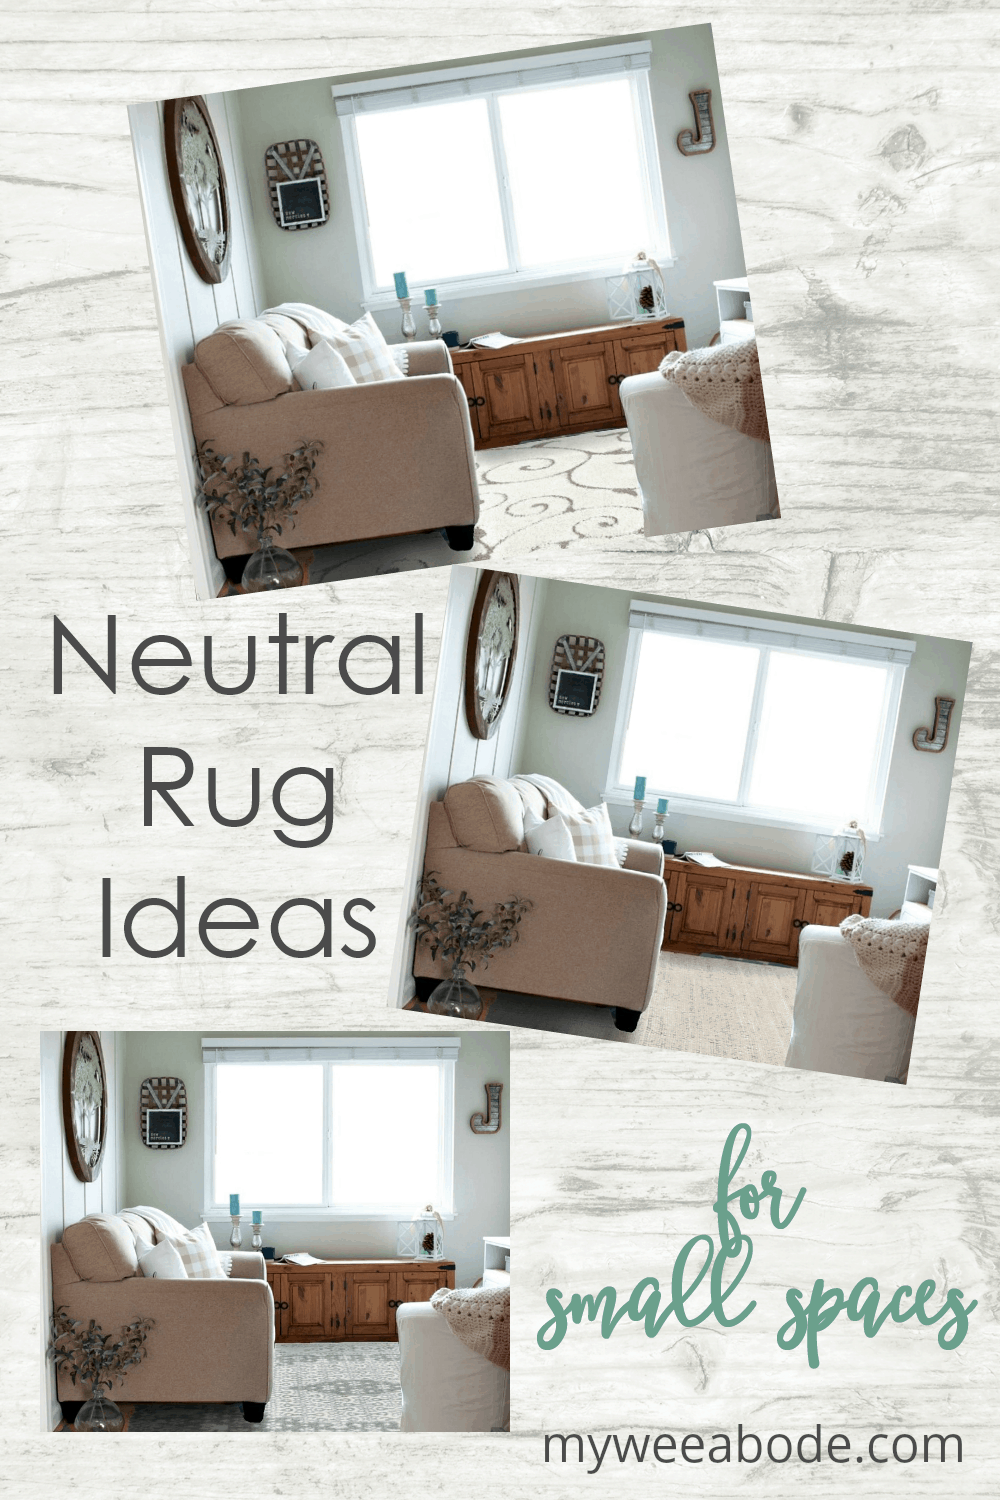 area rug ideas for a small space with living room furniture and aqua rug